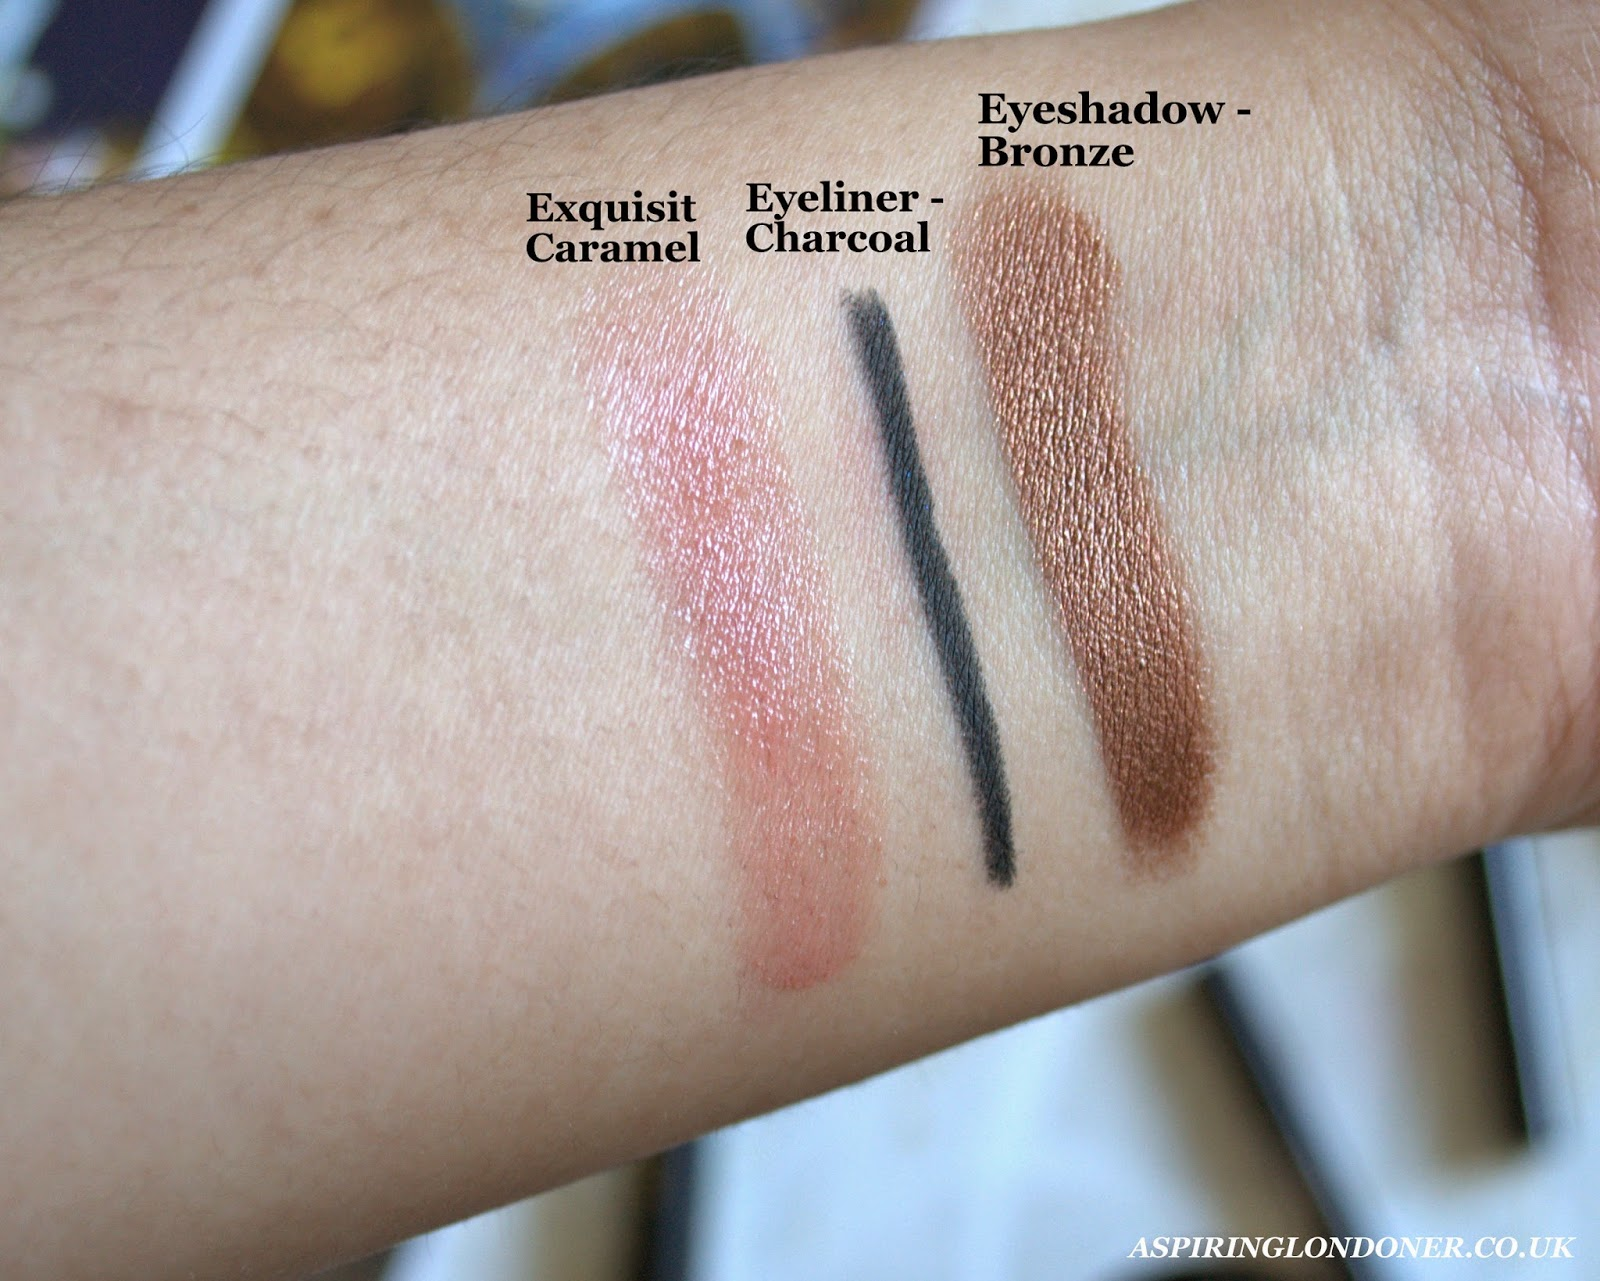 Max Factor Excess Shimmer Eyeshadow Eyeliner Swatch Colour Balm Swatch - Aspiring Londoner